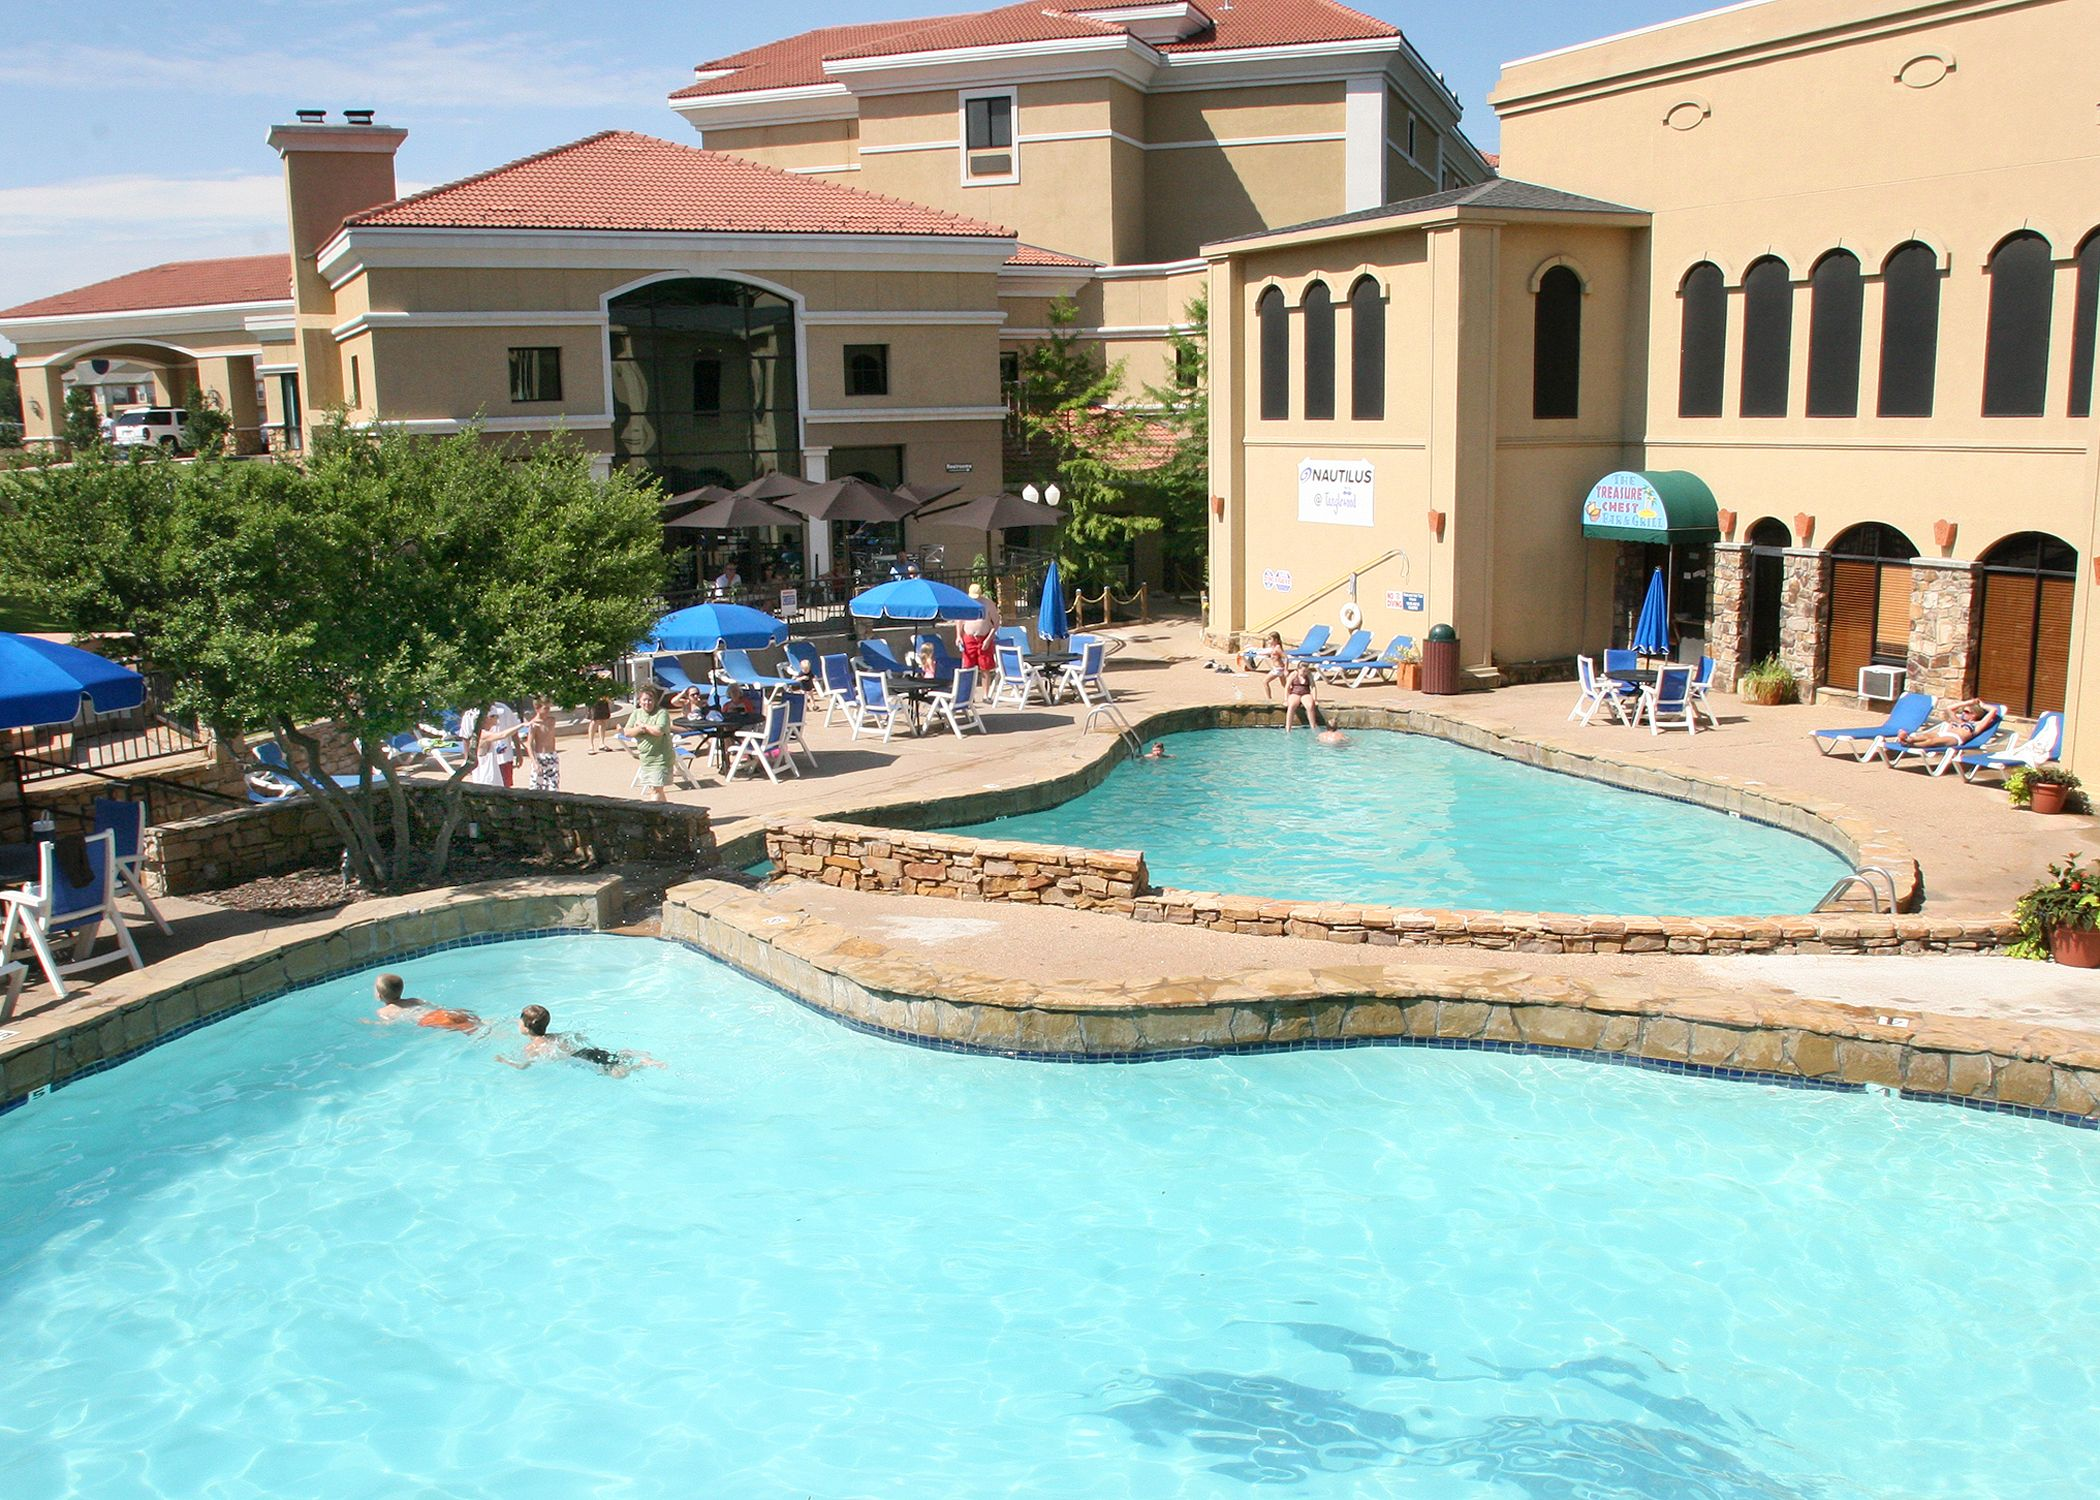 The Outdoor Pool At Tanglewood Resort And Conference Center Pottsboro Tx Resortsandlodges Travel Vacation